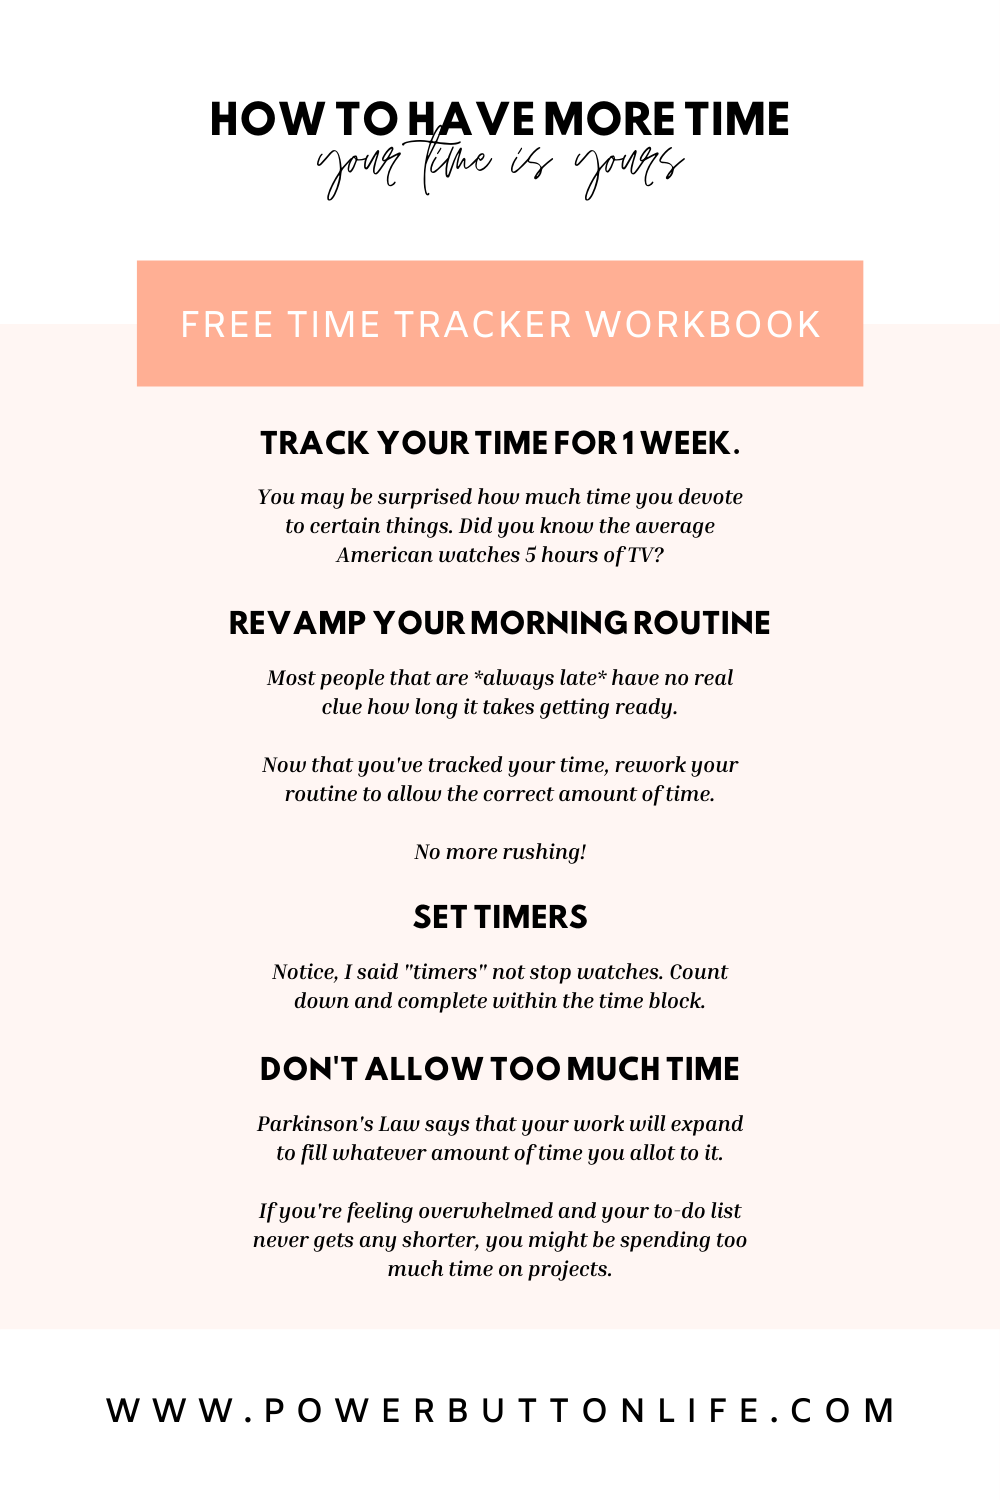 Time management hacks for creatives with scattered brains.